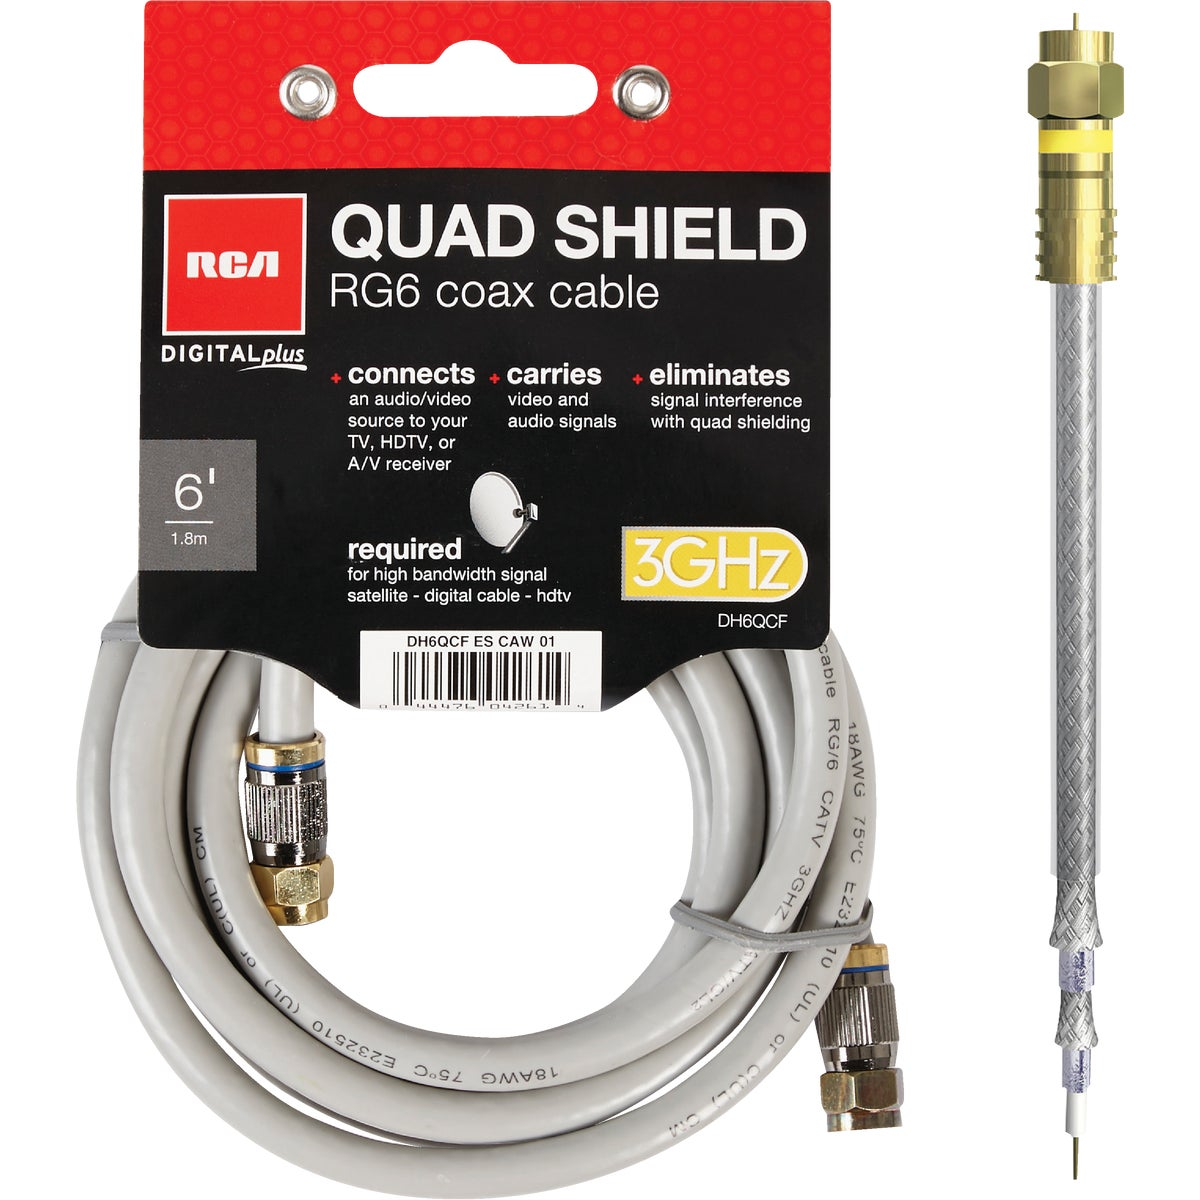 Item 561118, The Digital Plus quad RG6 coaxial cable is a quality digital cable that connects any antenna, PVR, VCR, HDTV, cable box, or satellite receiver.